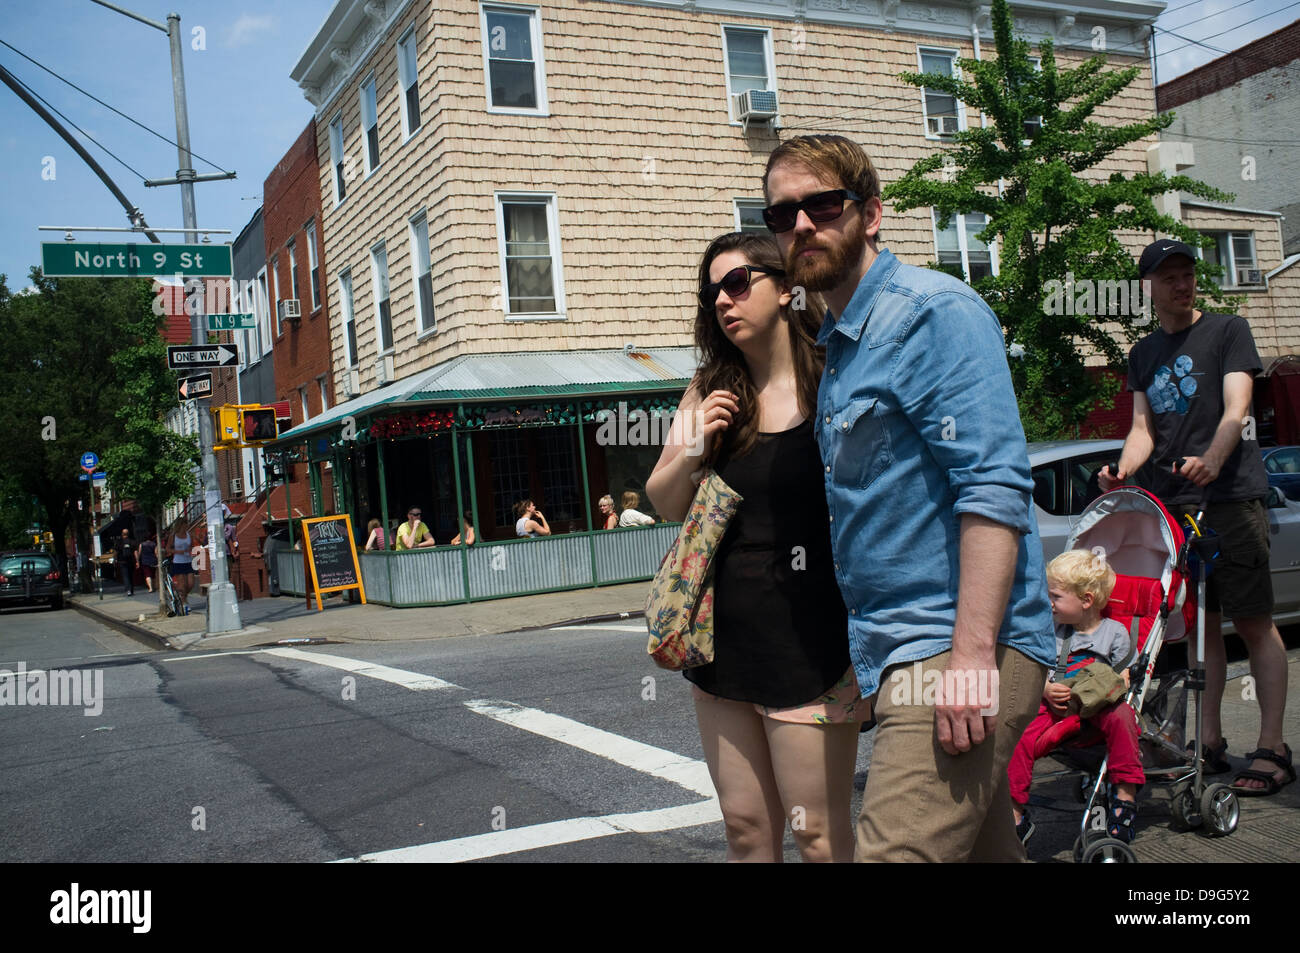 Hipsters in Williamsburg, Brooklyn, New York Stock Photo